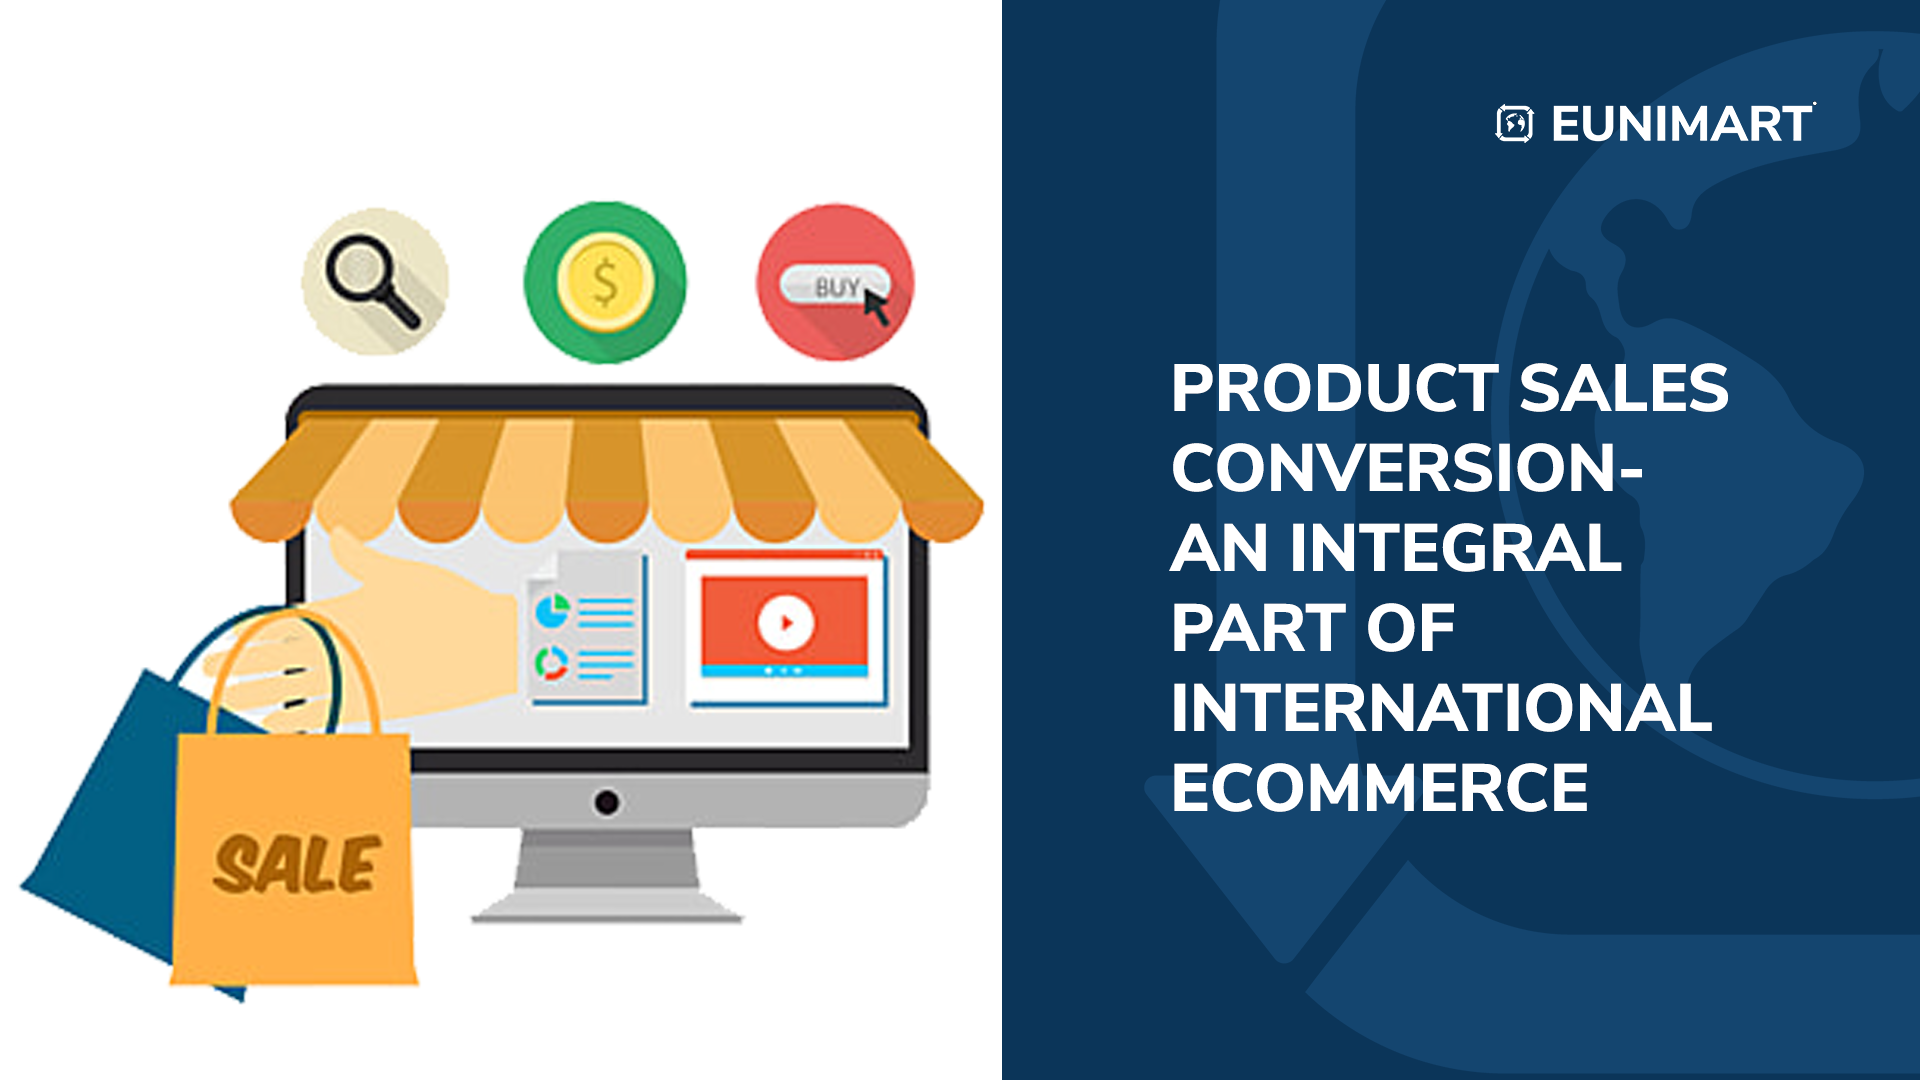 Product Sales Conversion- An Integral Part of International Ecommerce